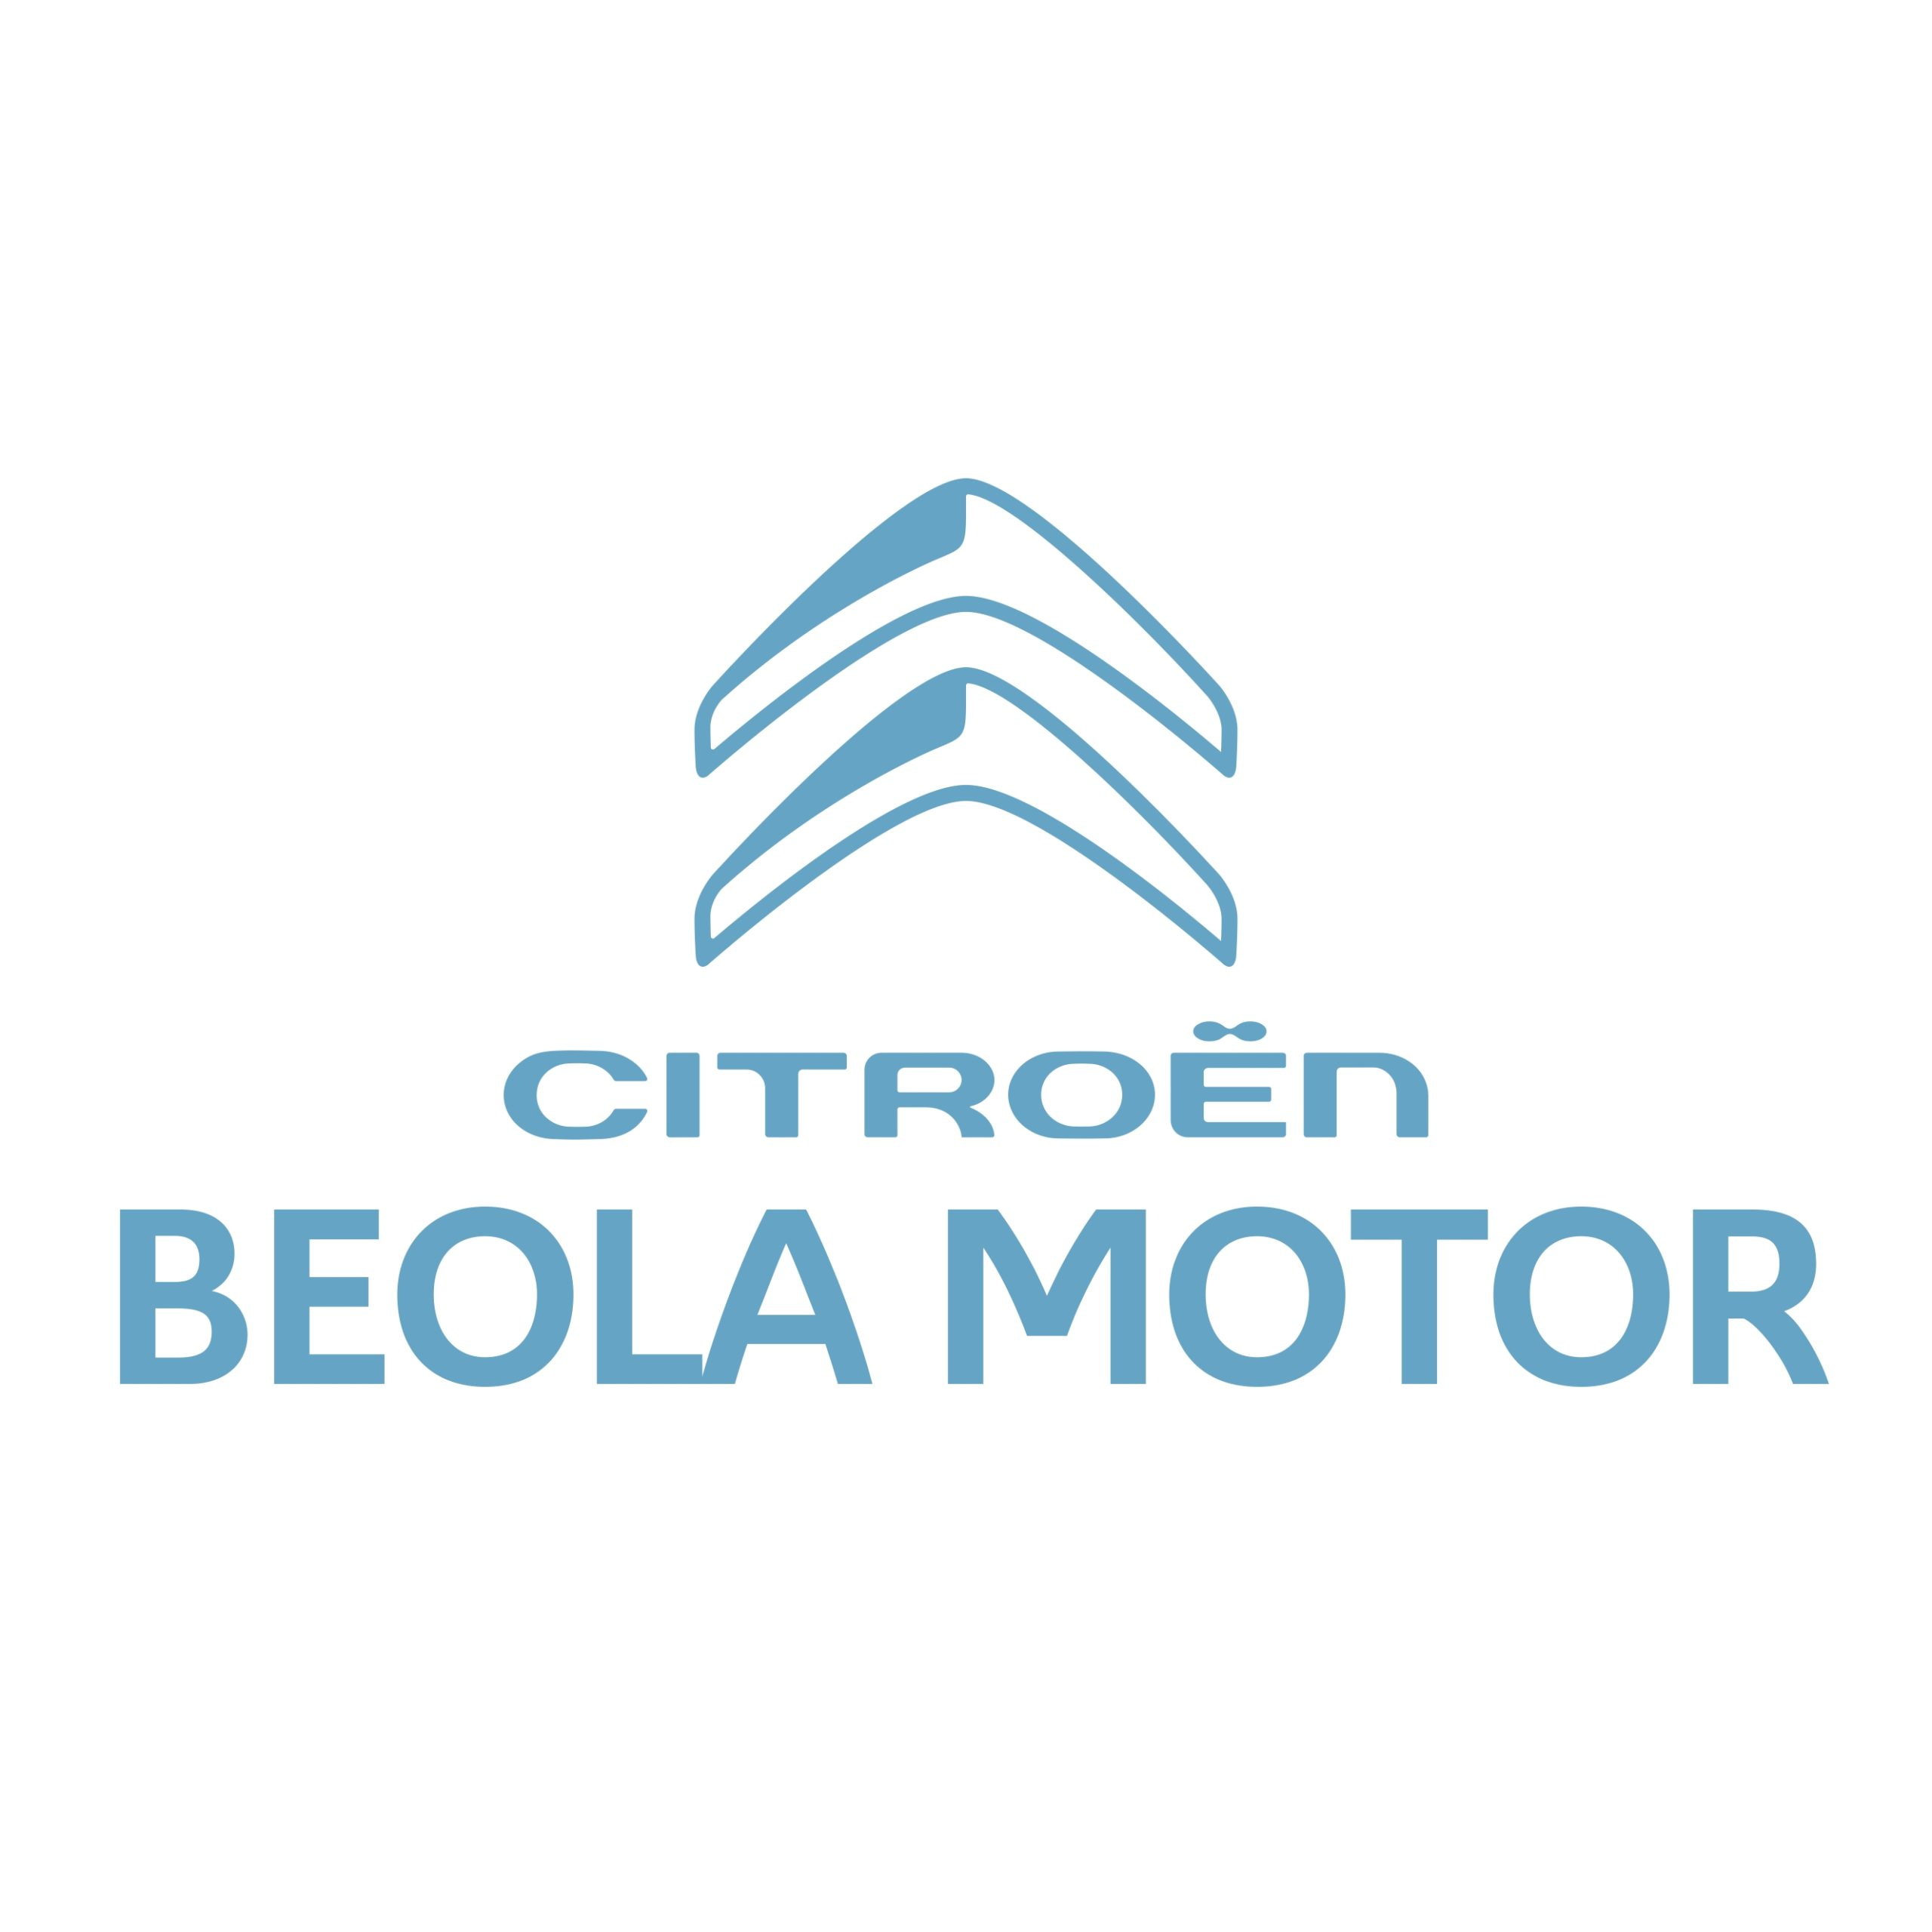 LOGO-CITROEN-BEOLA-JUN-2019-CMYK-copia_page-0002